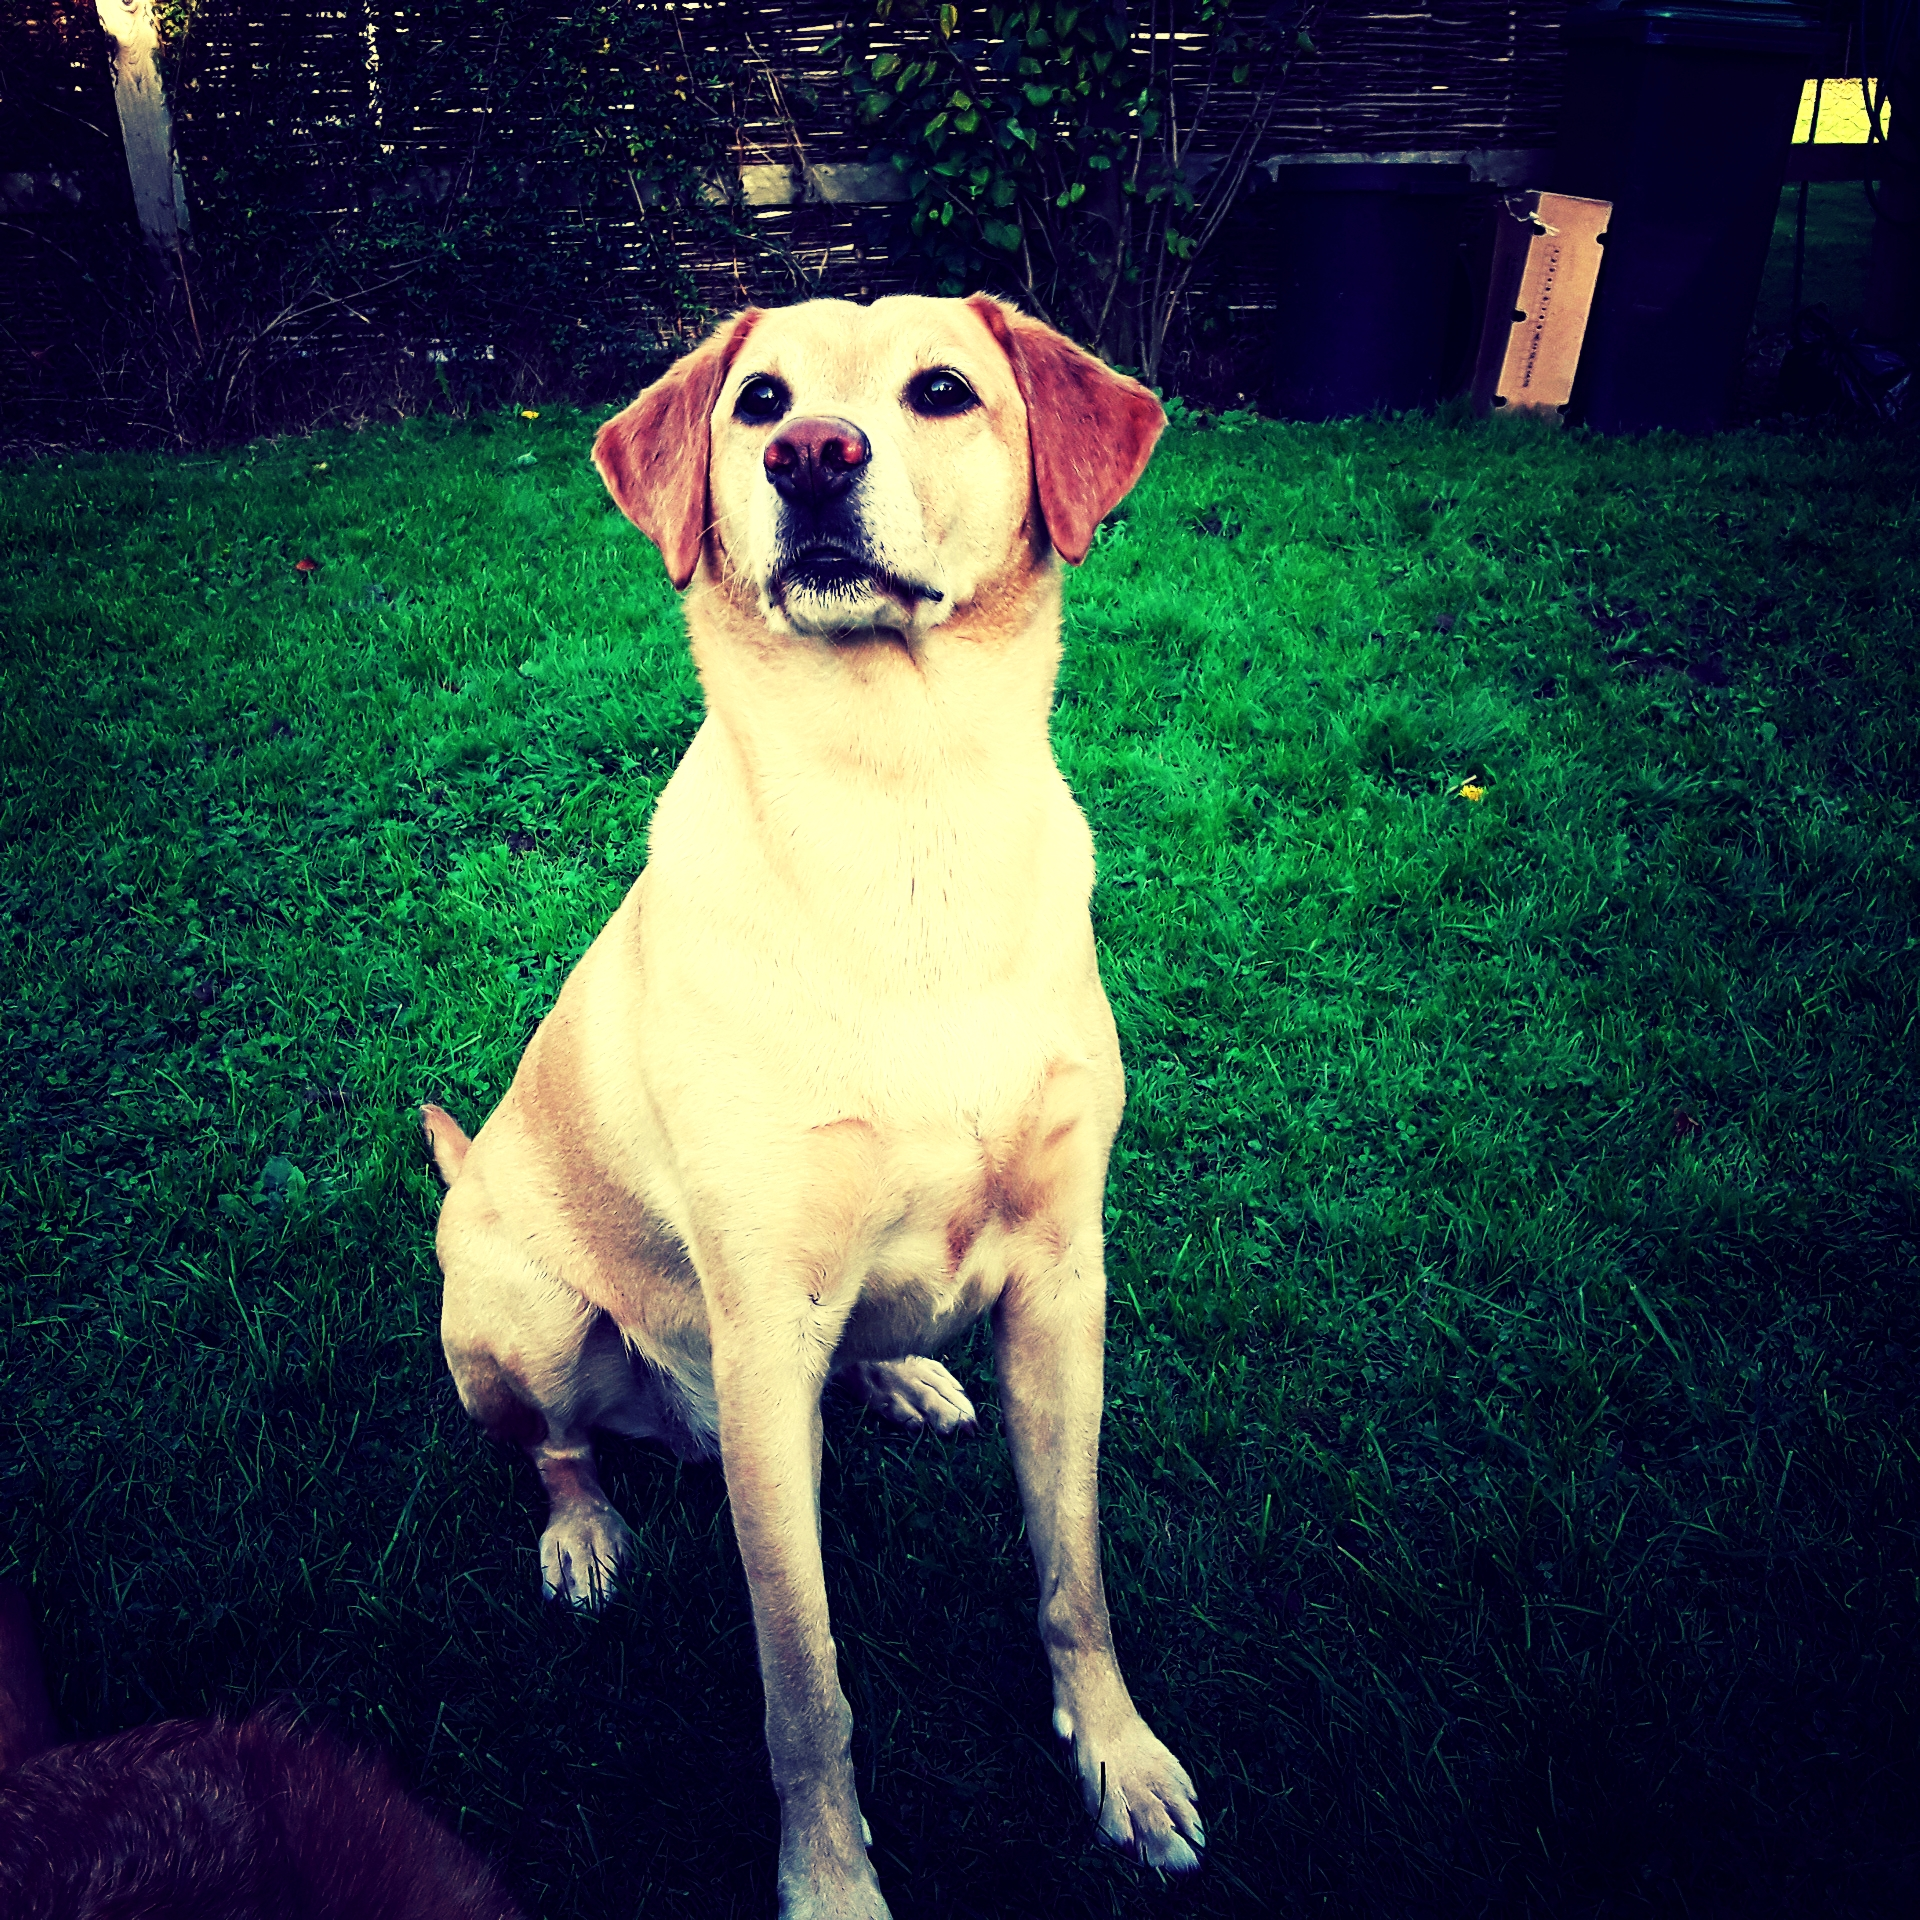 - He lifts his head into the air and with a left and right twitch of the nose drinks in the scent of the pheasants that are in the field way ahead.Gundogs have been bred for centuries to follow a scent of wounded game and retrieve it back to their owners